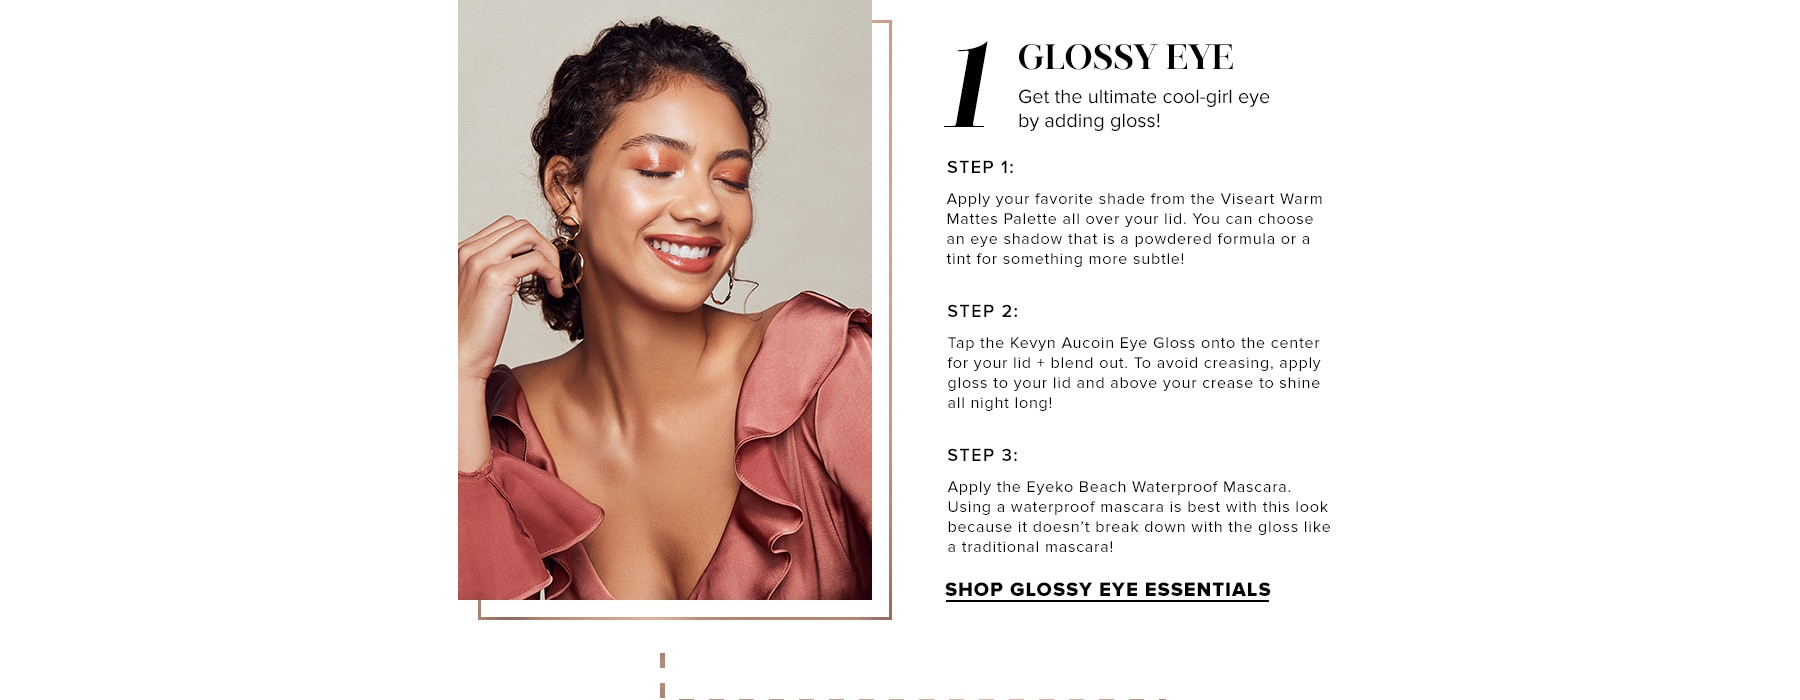 1. Glossy Eye - Get the ultimate cool-girl eye by adding gloss!